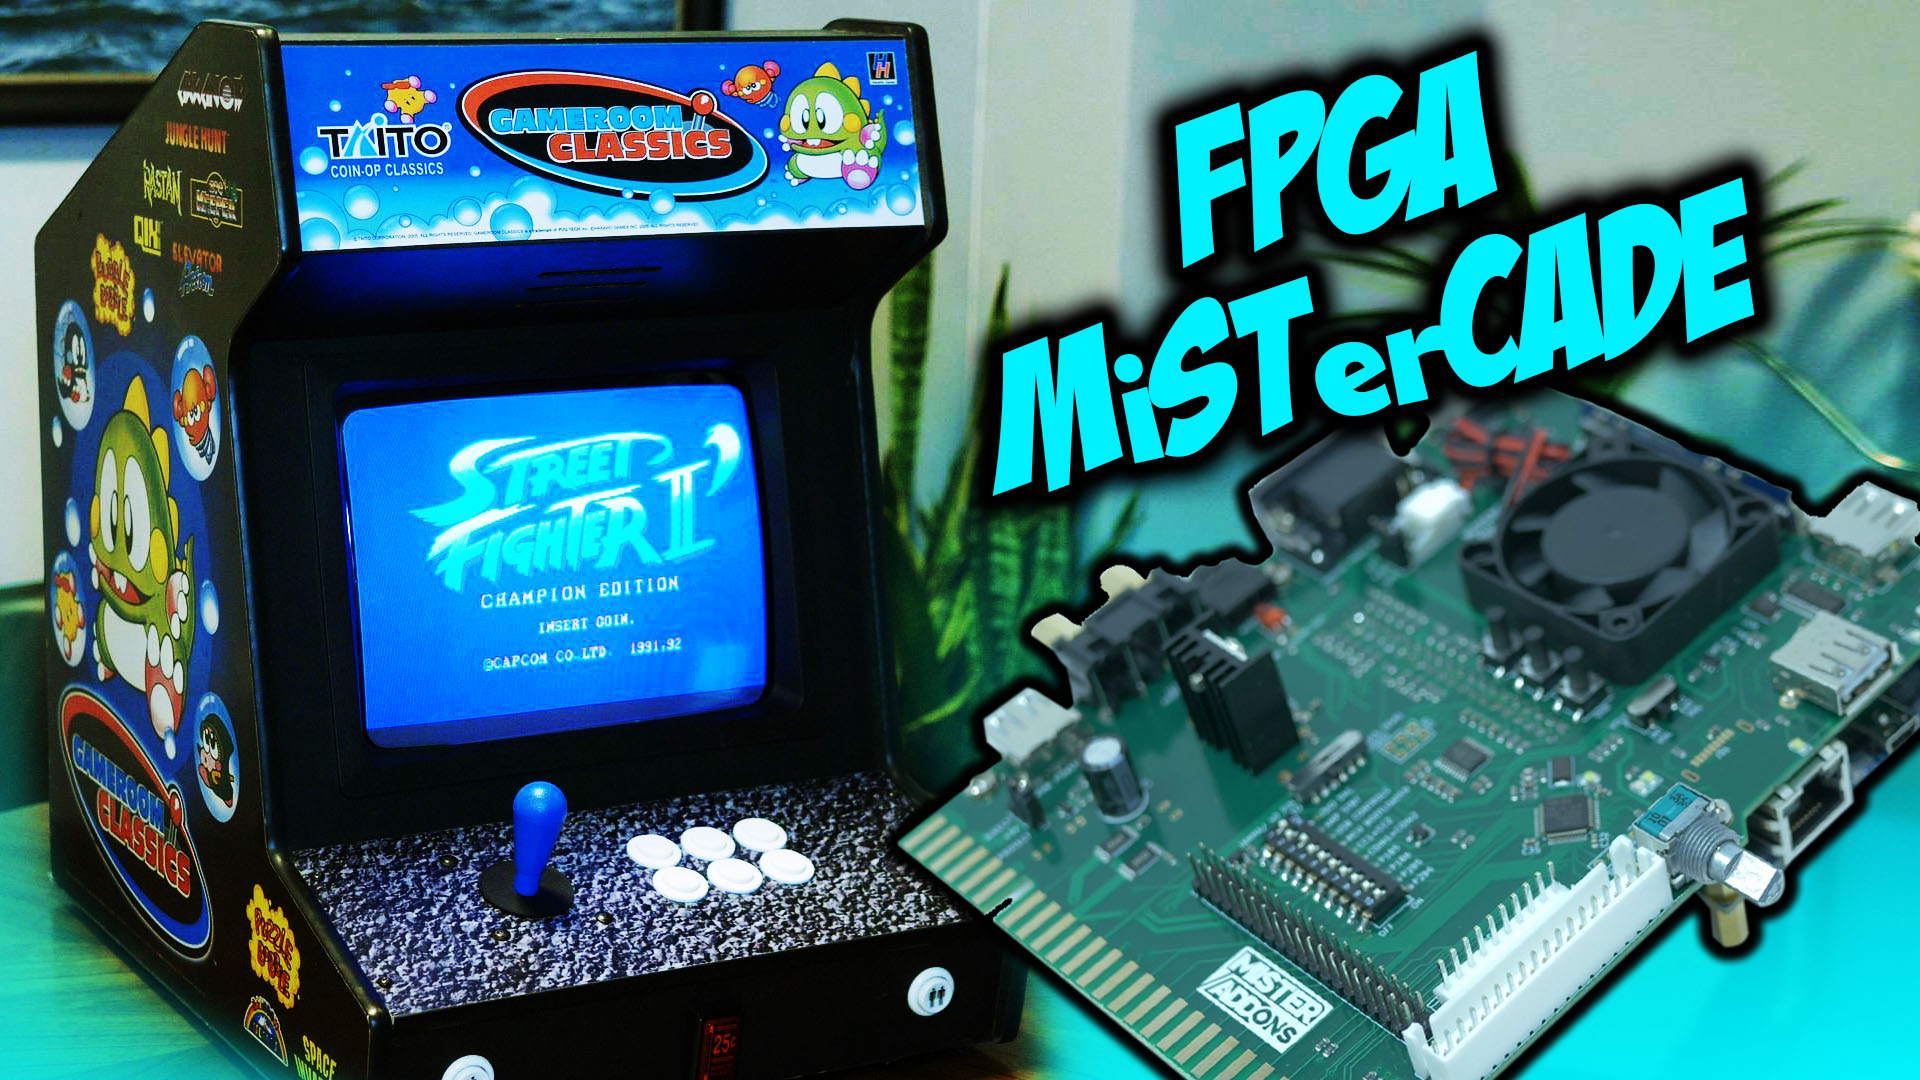 MiSTerCade: Installation and Overview